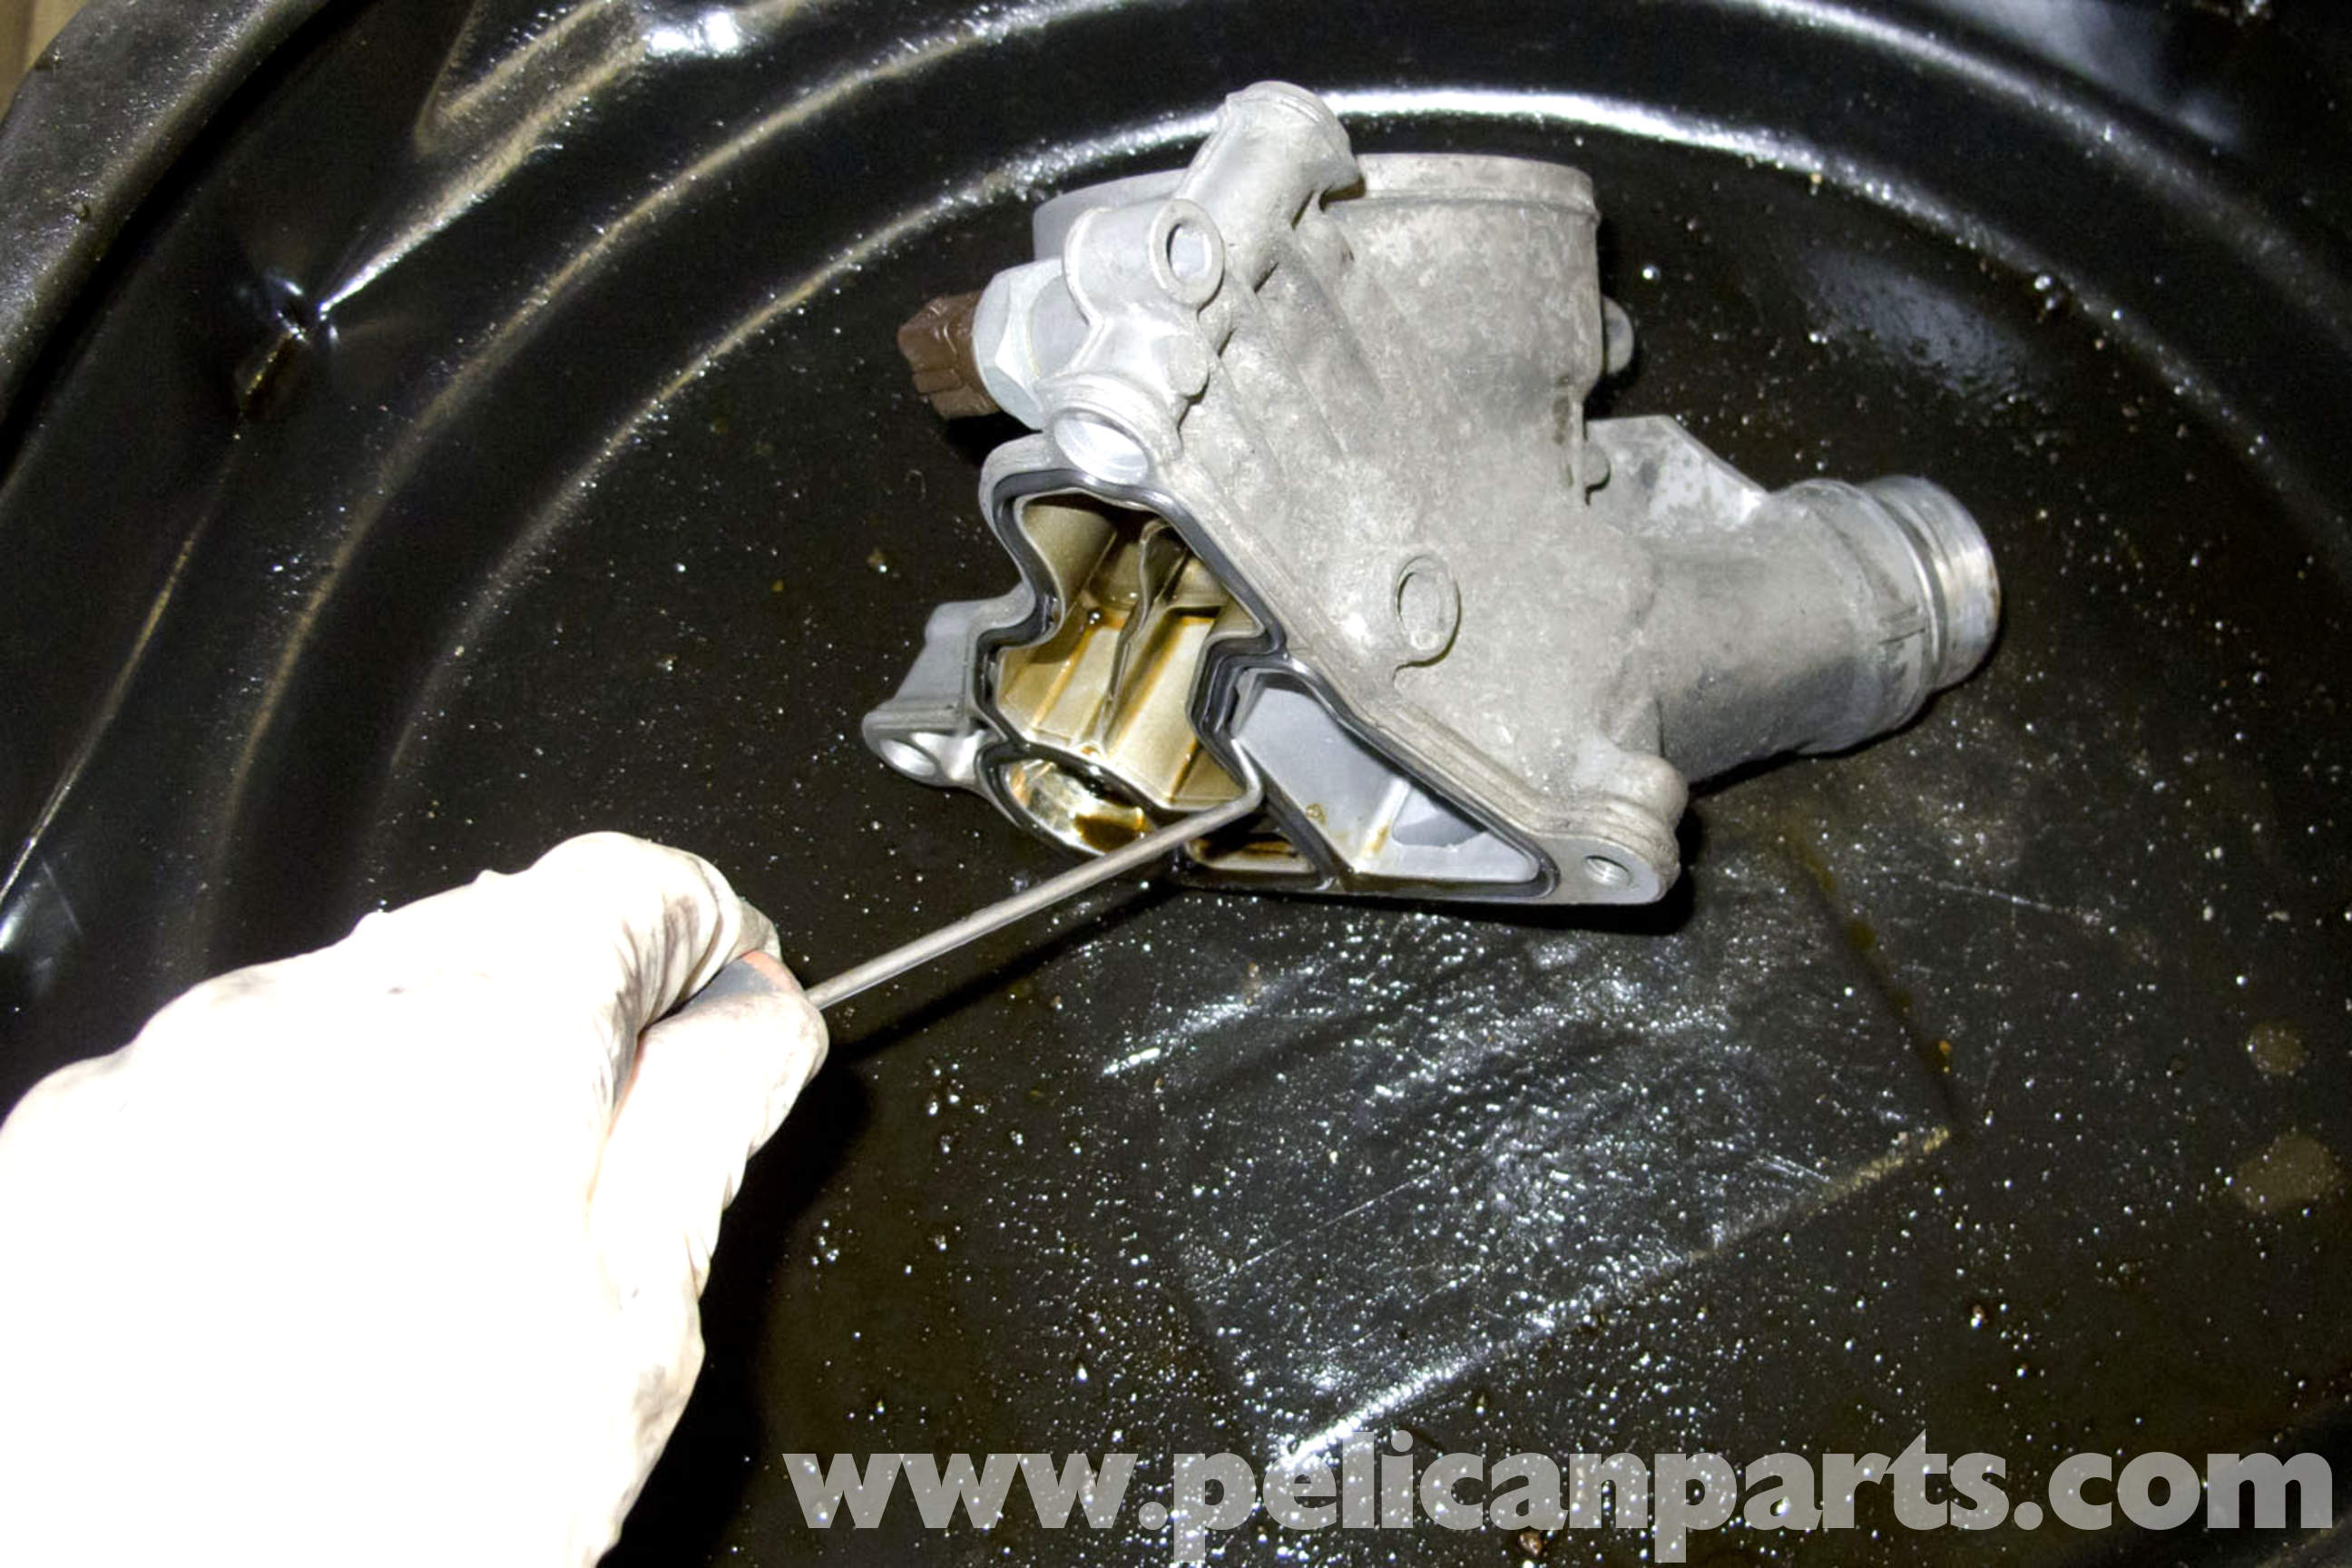 BMW E90 Oil Filter Housing Gasket Replacement | E91, E92